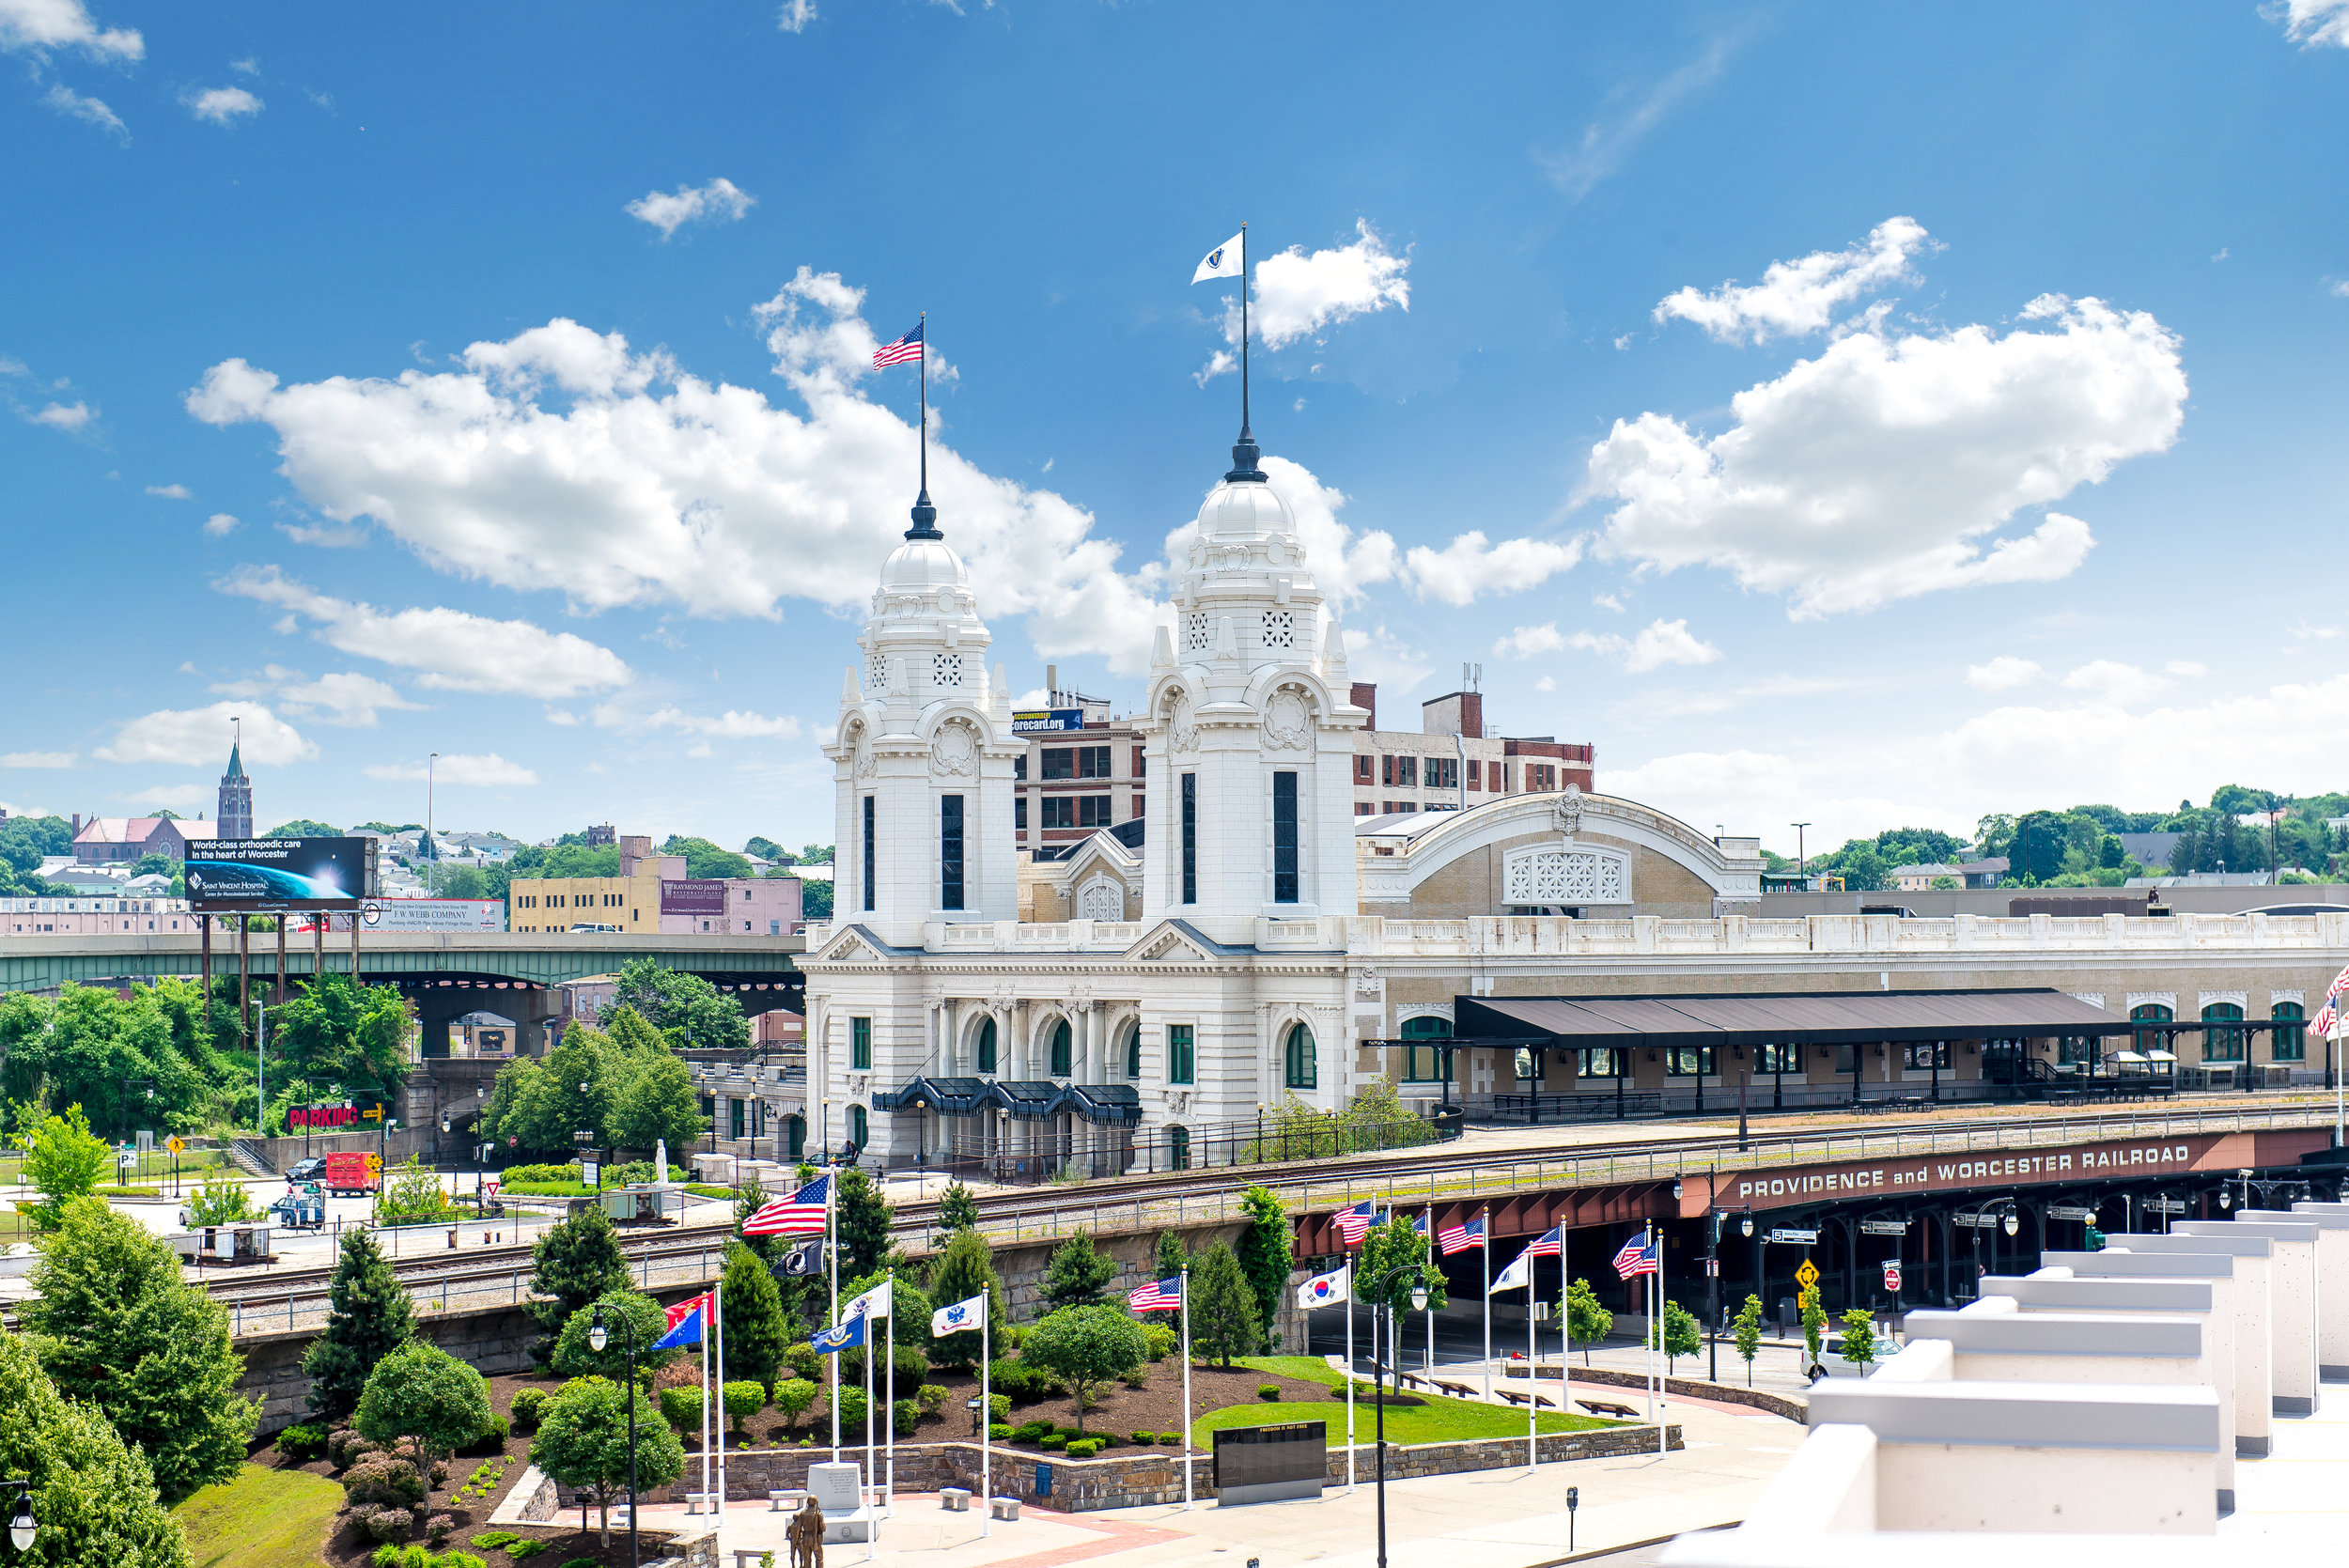 Union Station in Worcester, MA. Photo from Destination Worcester.